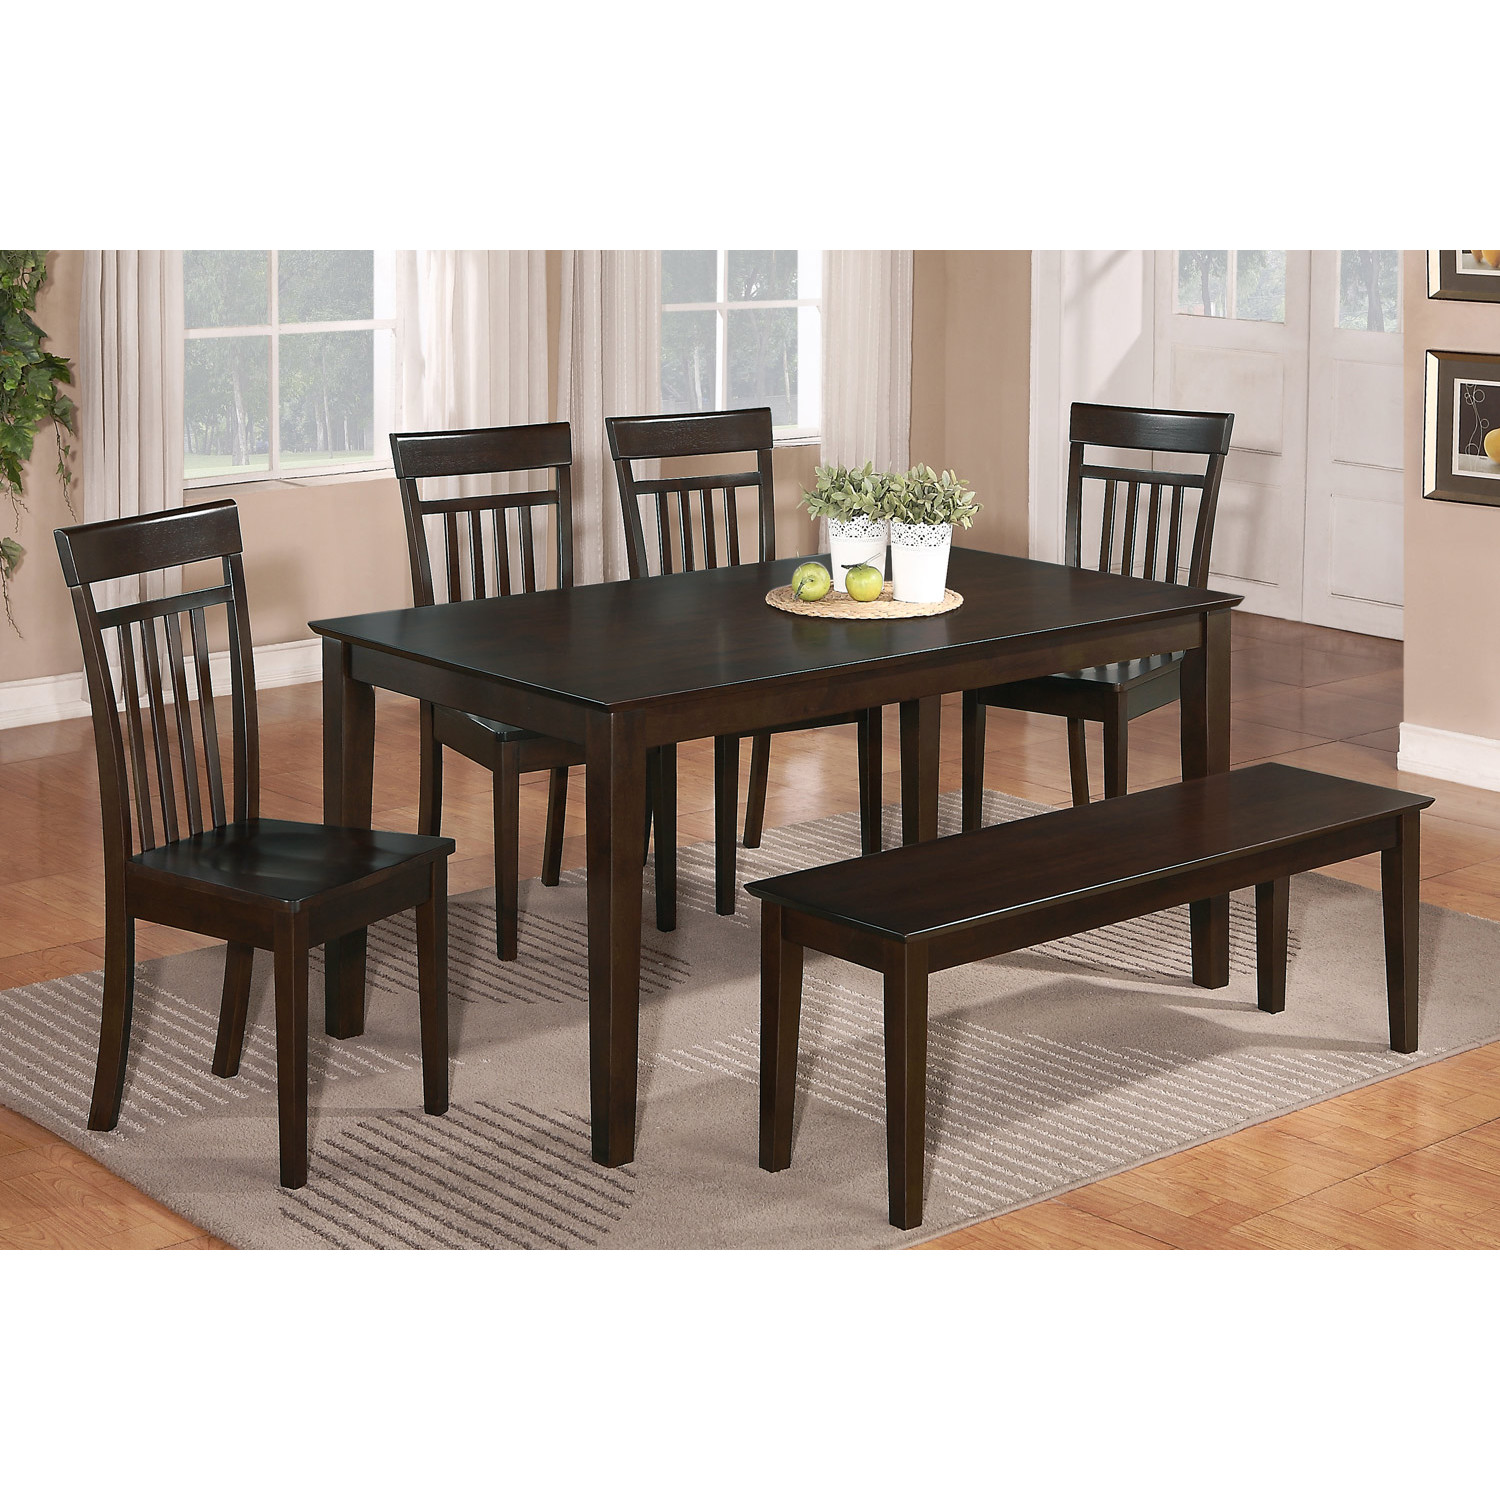 Awesome Dinette Sets With Bench